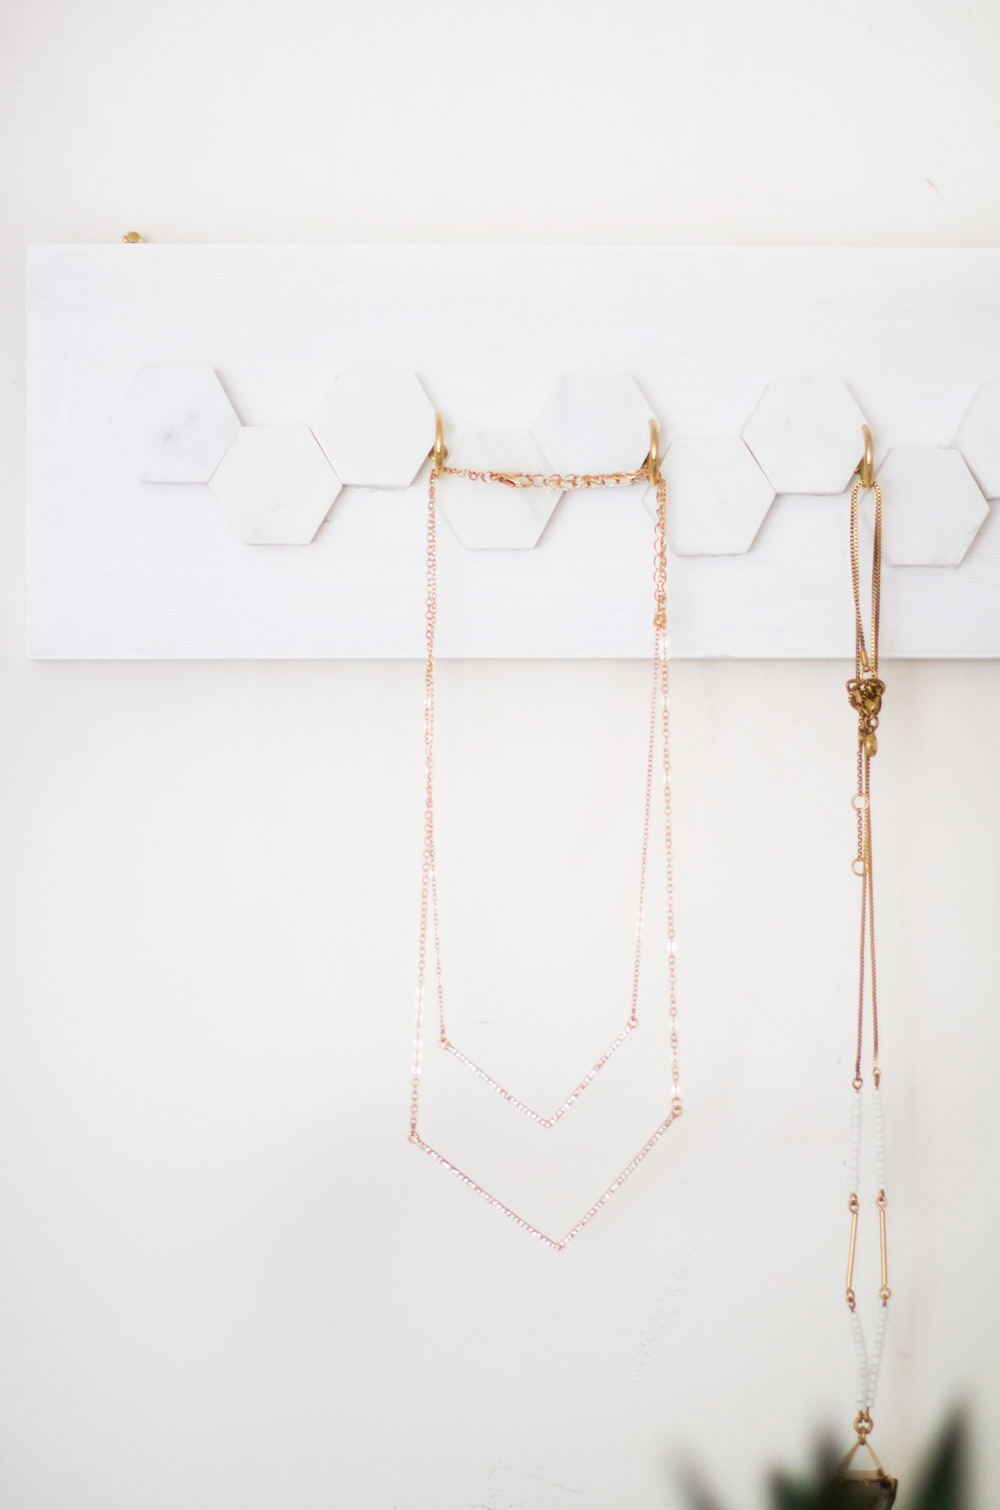 diy_jewelry_hanger_6